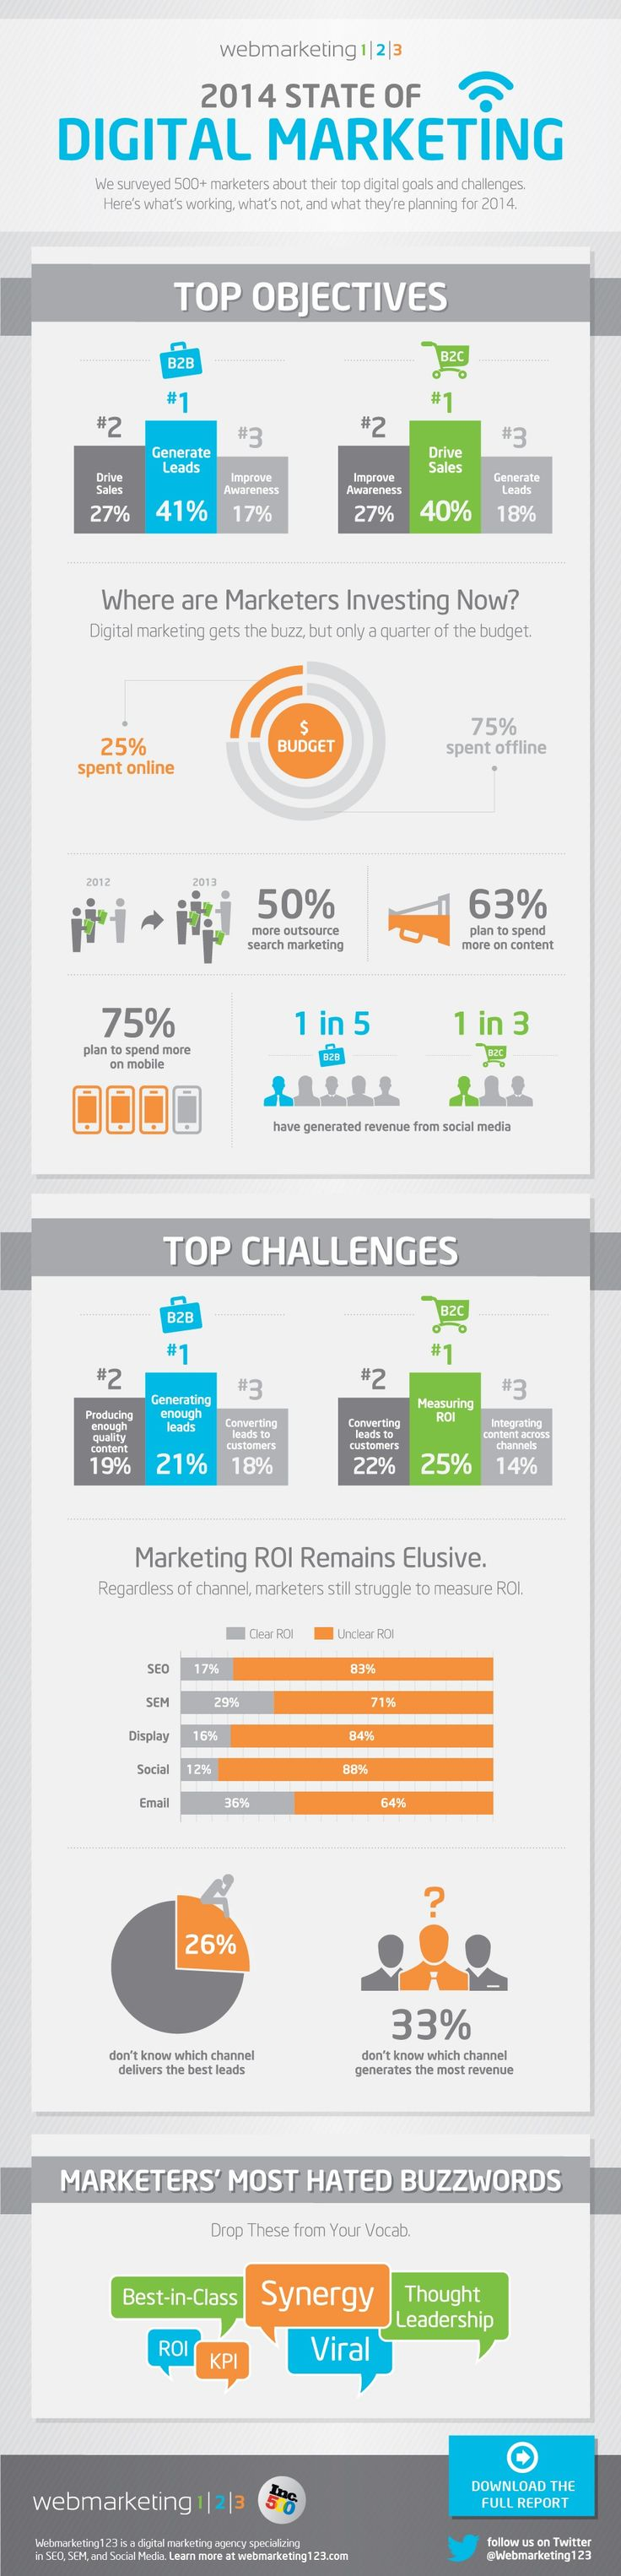 State of Digital Marketing 2014 [Infographic] - SocialTimes:  Internet Site, Digital Marketing, Digitalmarketing,  Website, Social Media, Web Site, 2014 Infographic, U.S. States, 2014 States